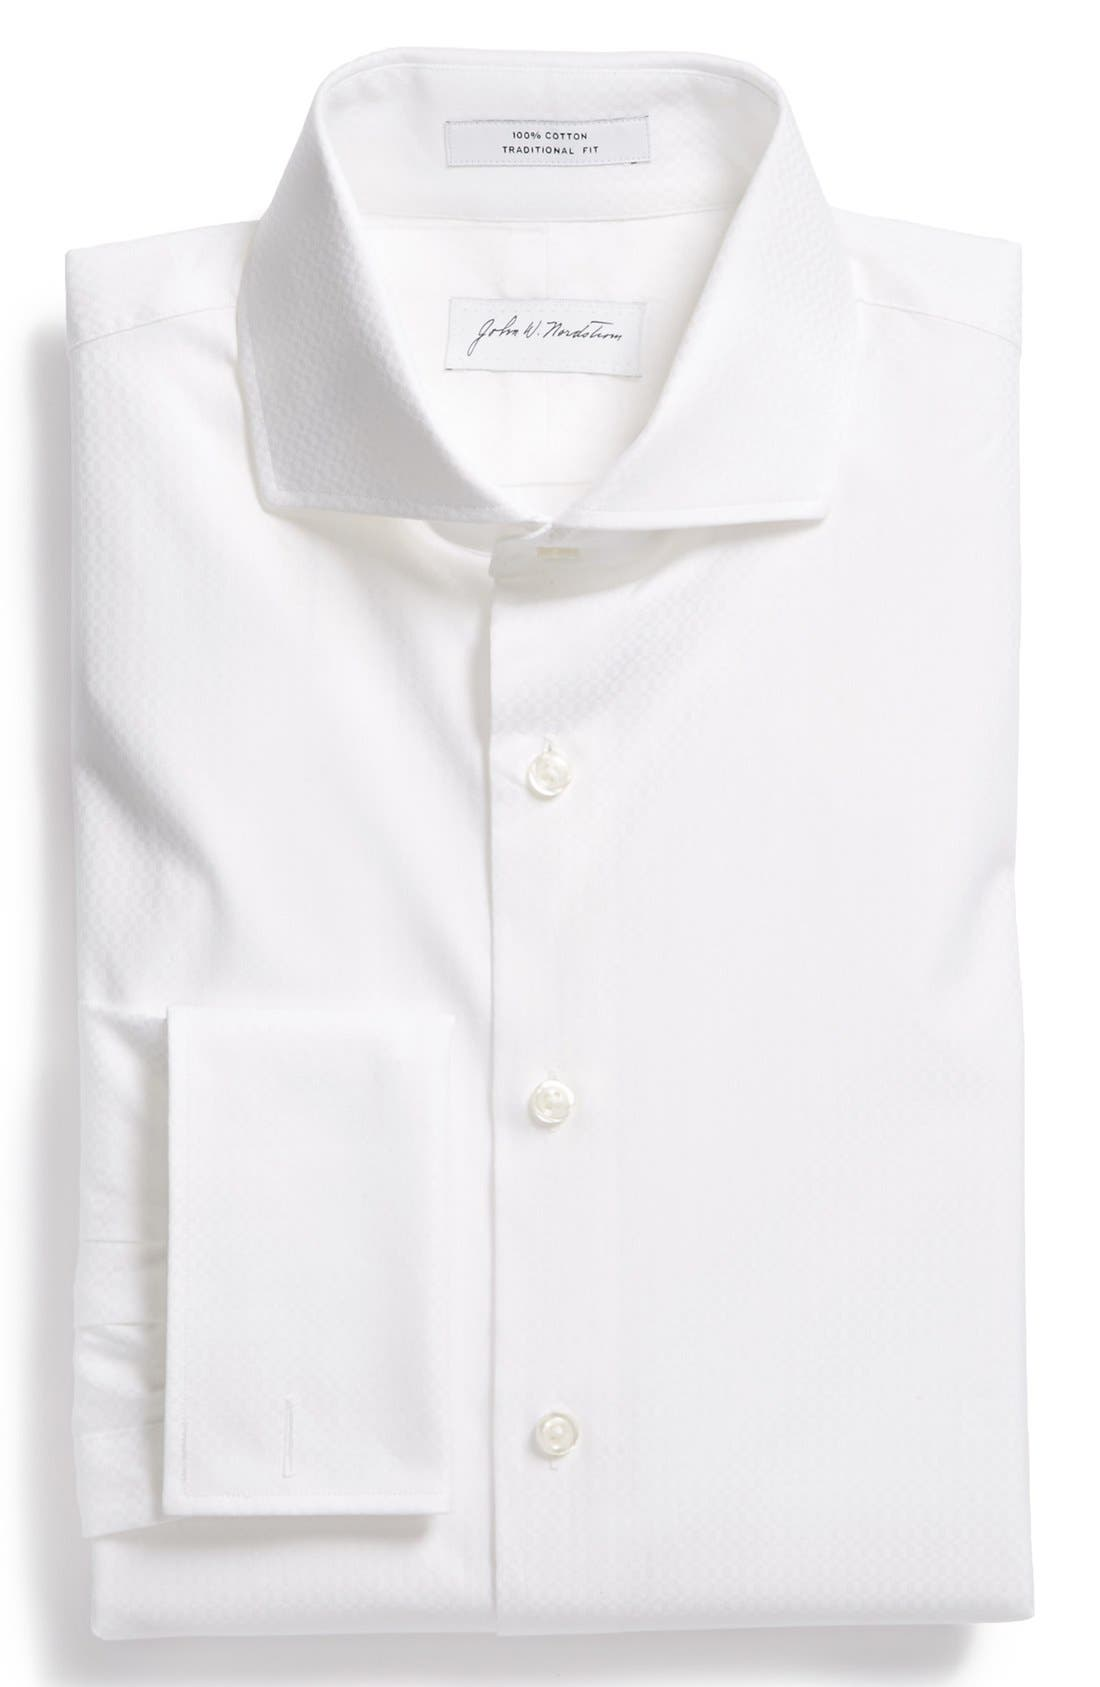 Main Image - John W. Nordstrom® Traditional Fit Tuxedo Shirt